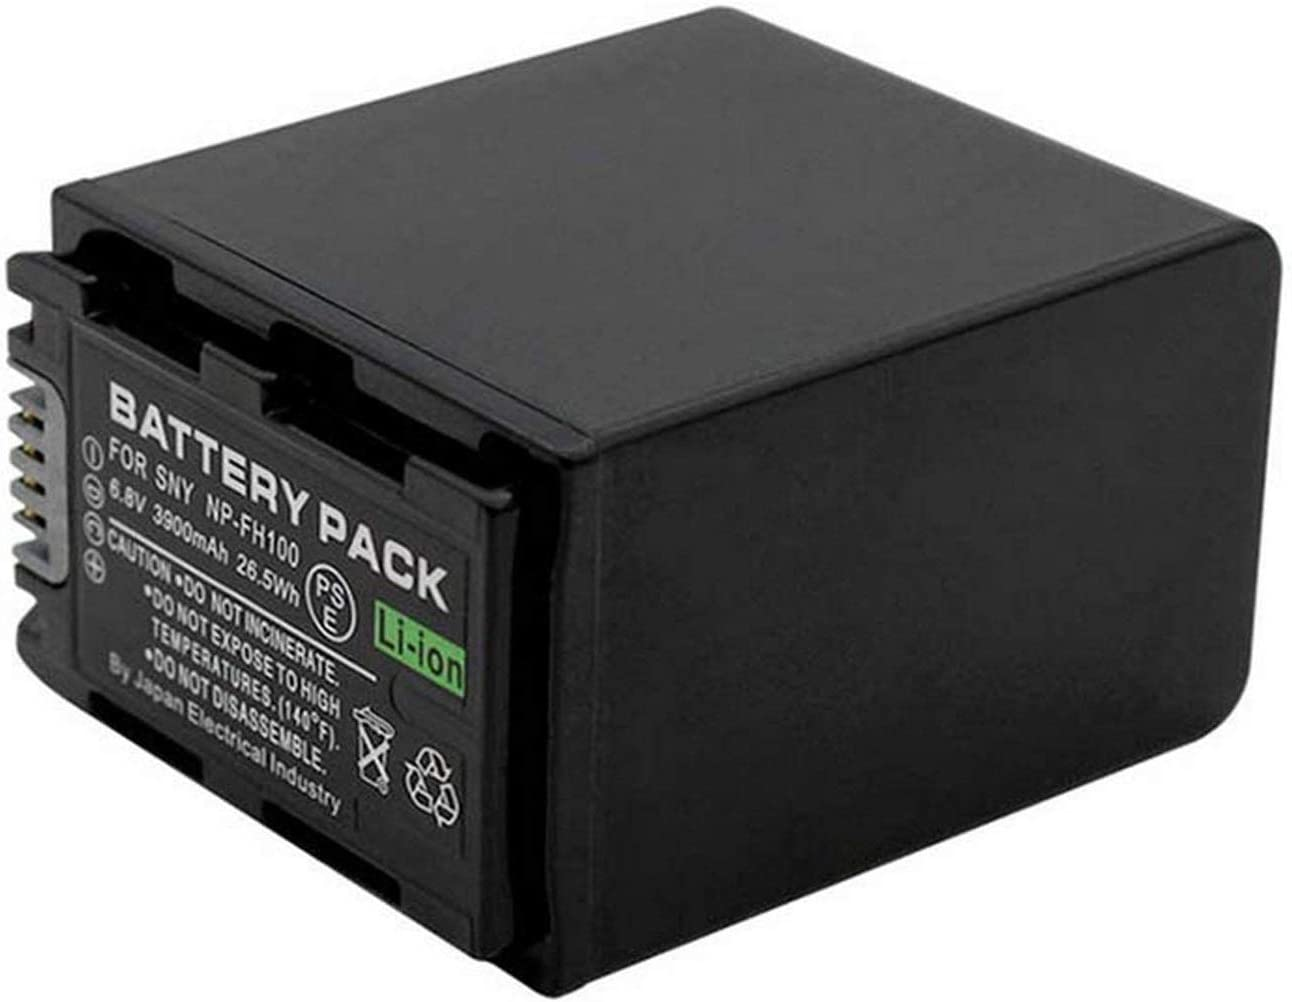 DCR-DVD115 Battery Pack for Sony DCR-DVD110 DCR-DVD150 Handycam Camcorder